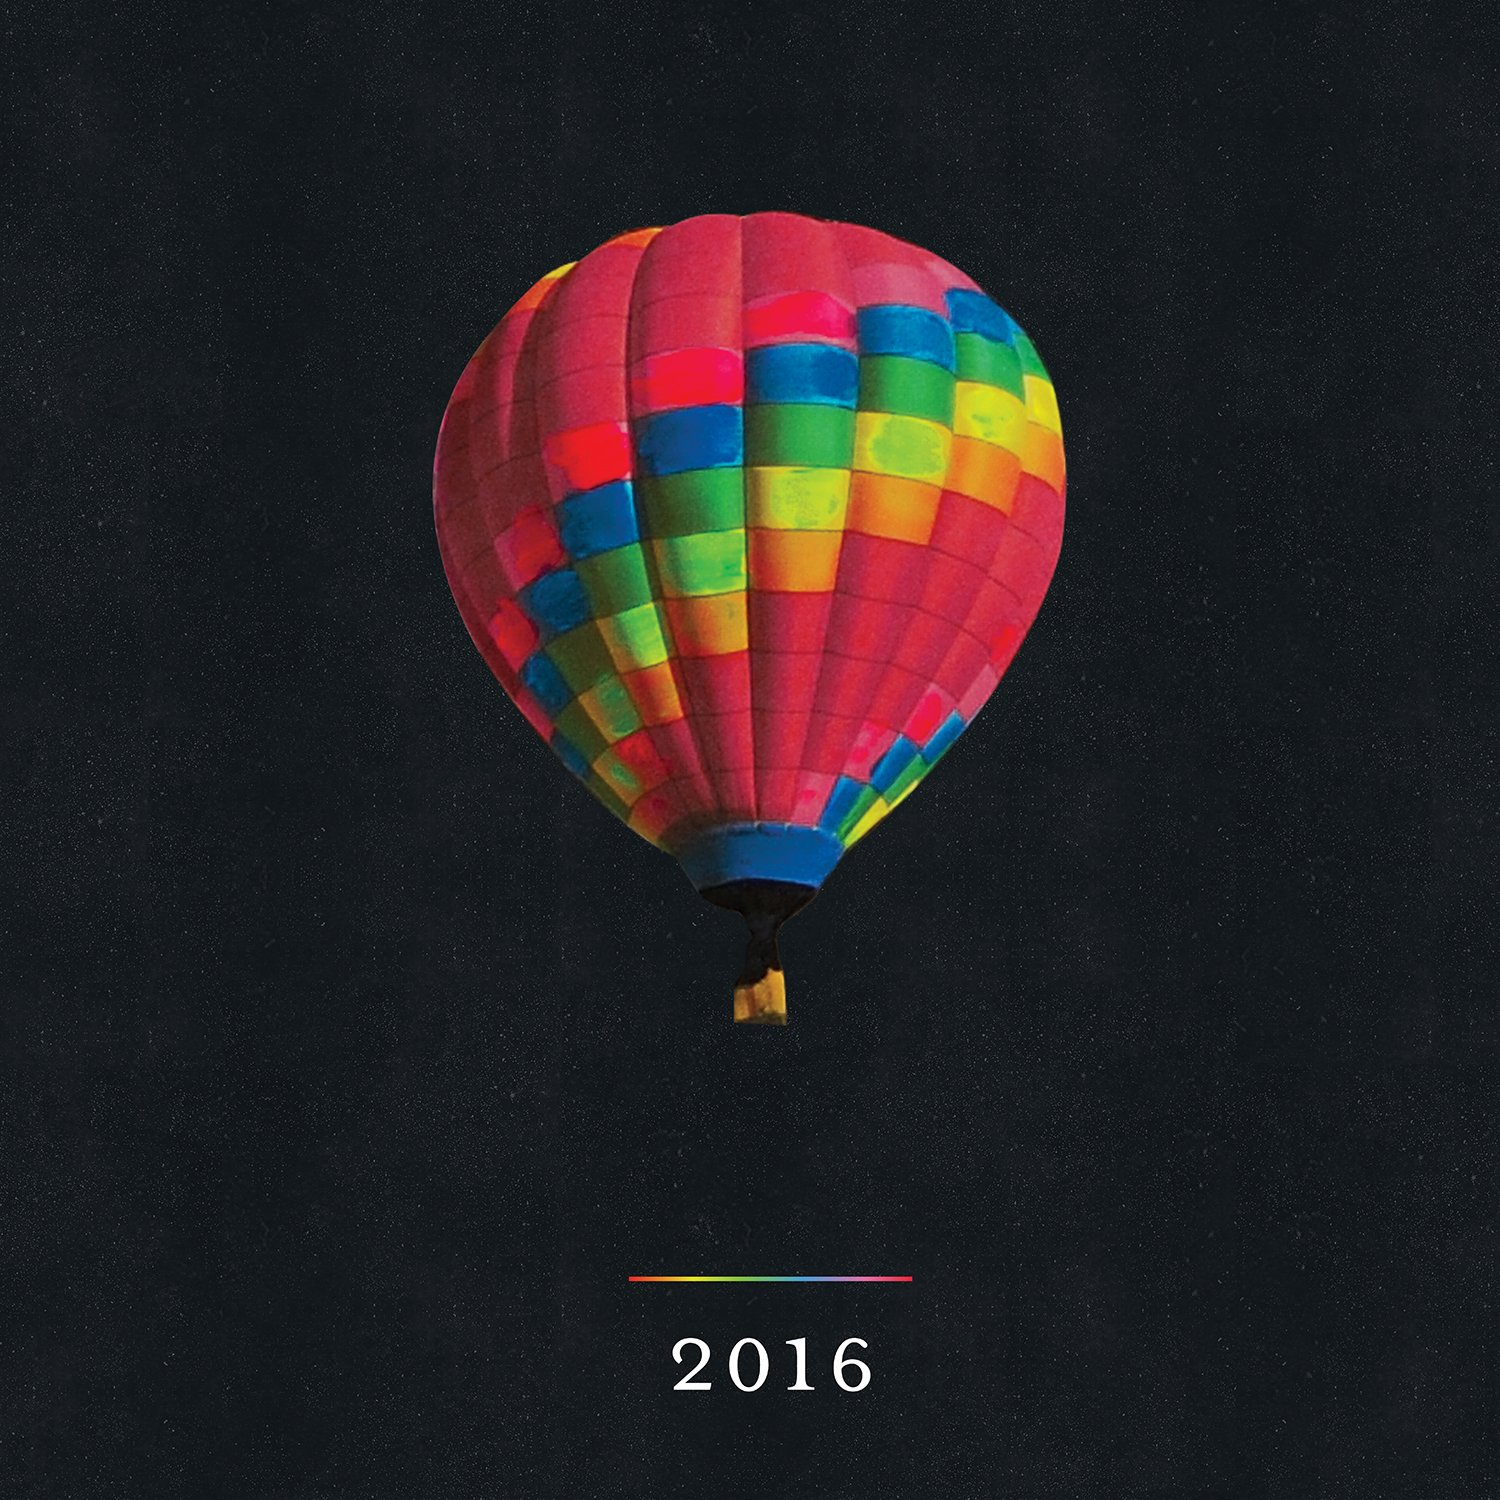 Coldplay balloon